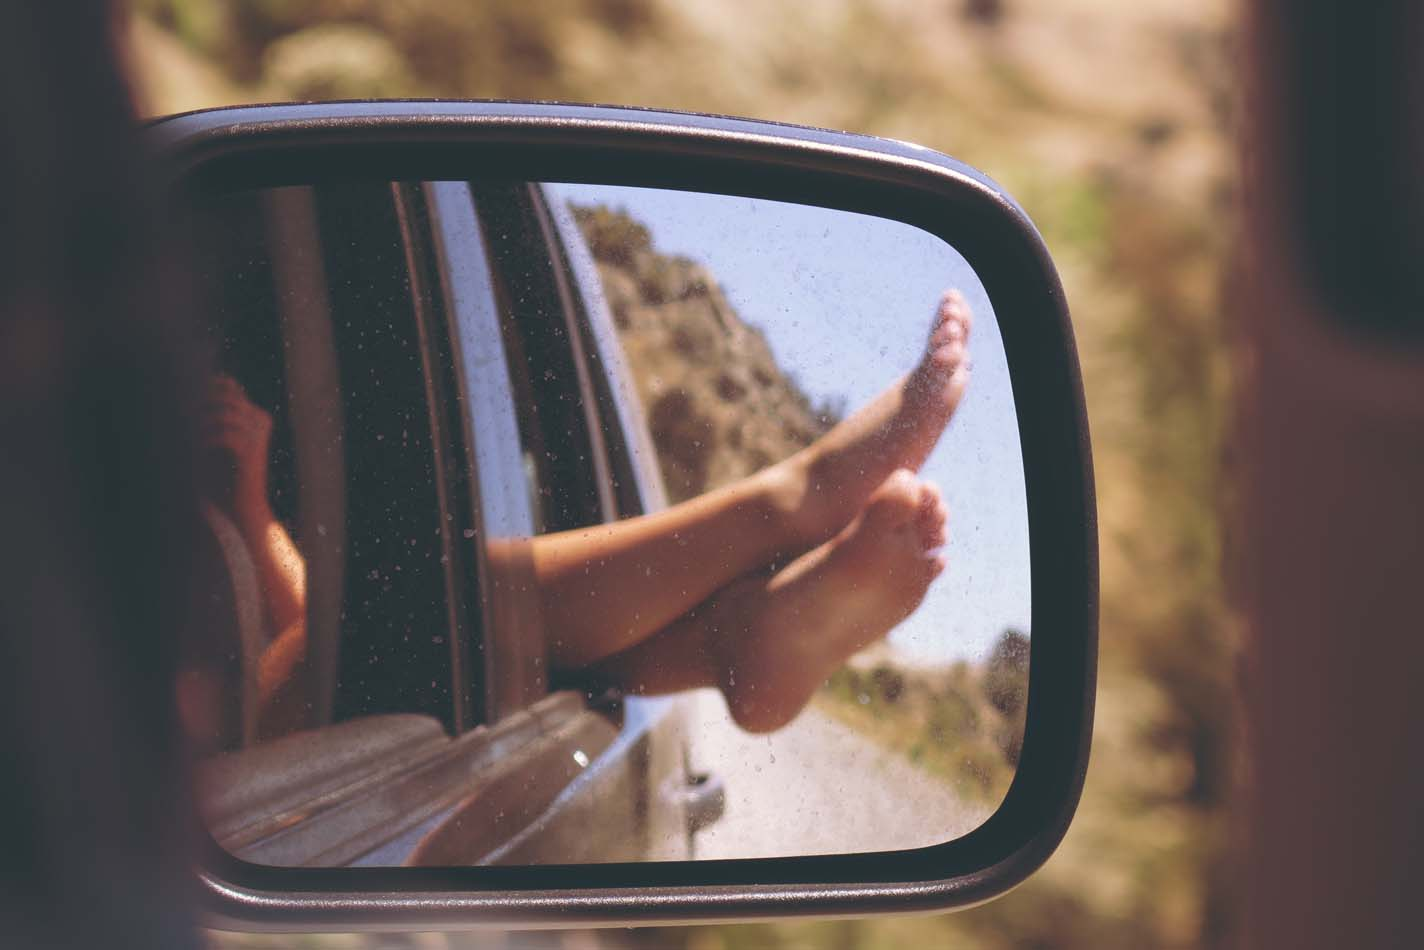 Woman legs outside car window captured through side view mirror